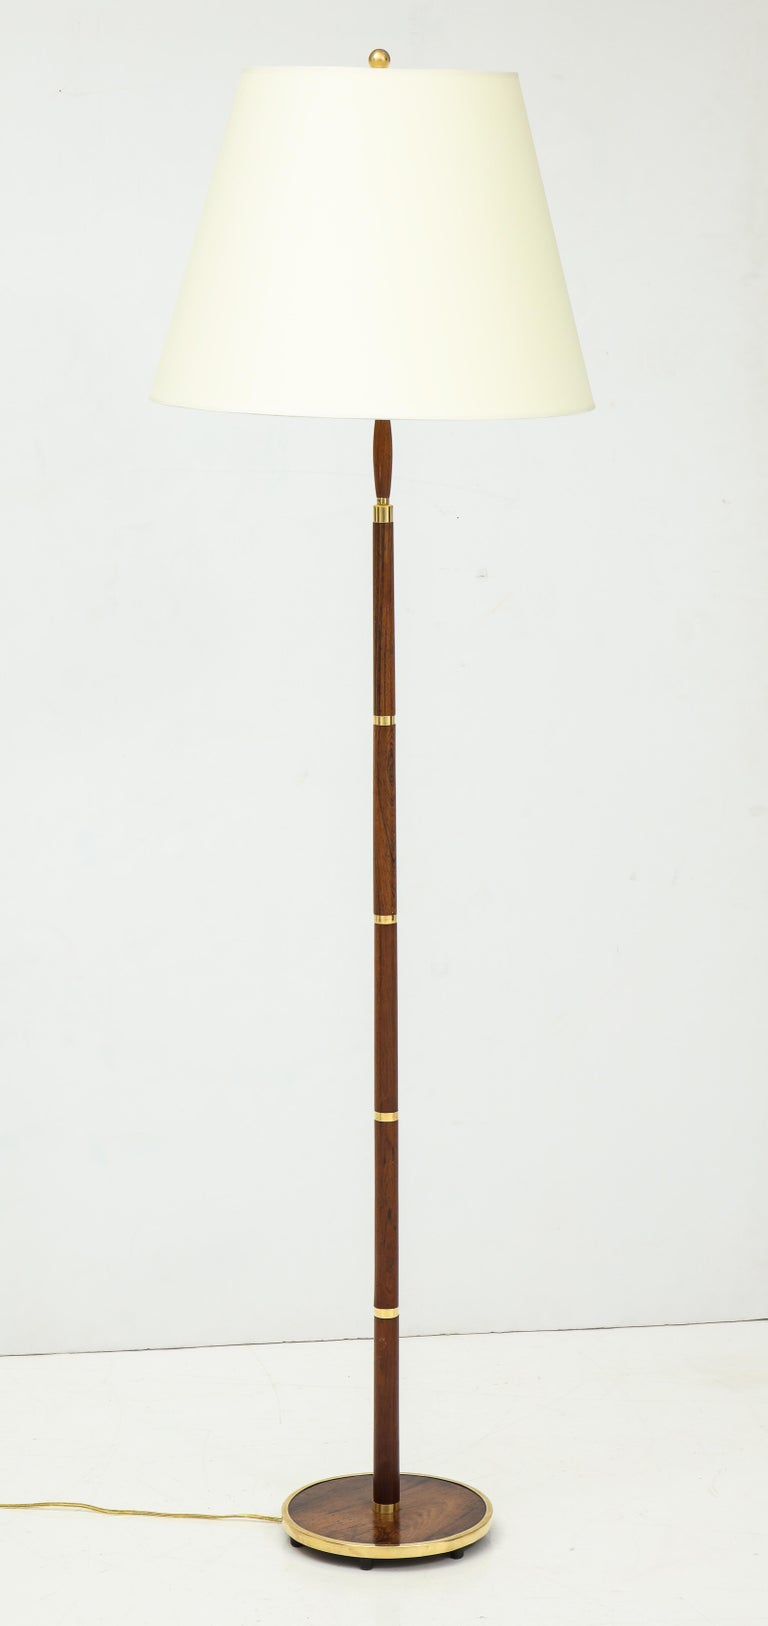 Danish Rosewood and Brass Banded Floor Lamp by Fog & Mørup, circa 1960s For Sale 2